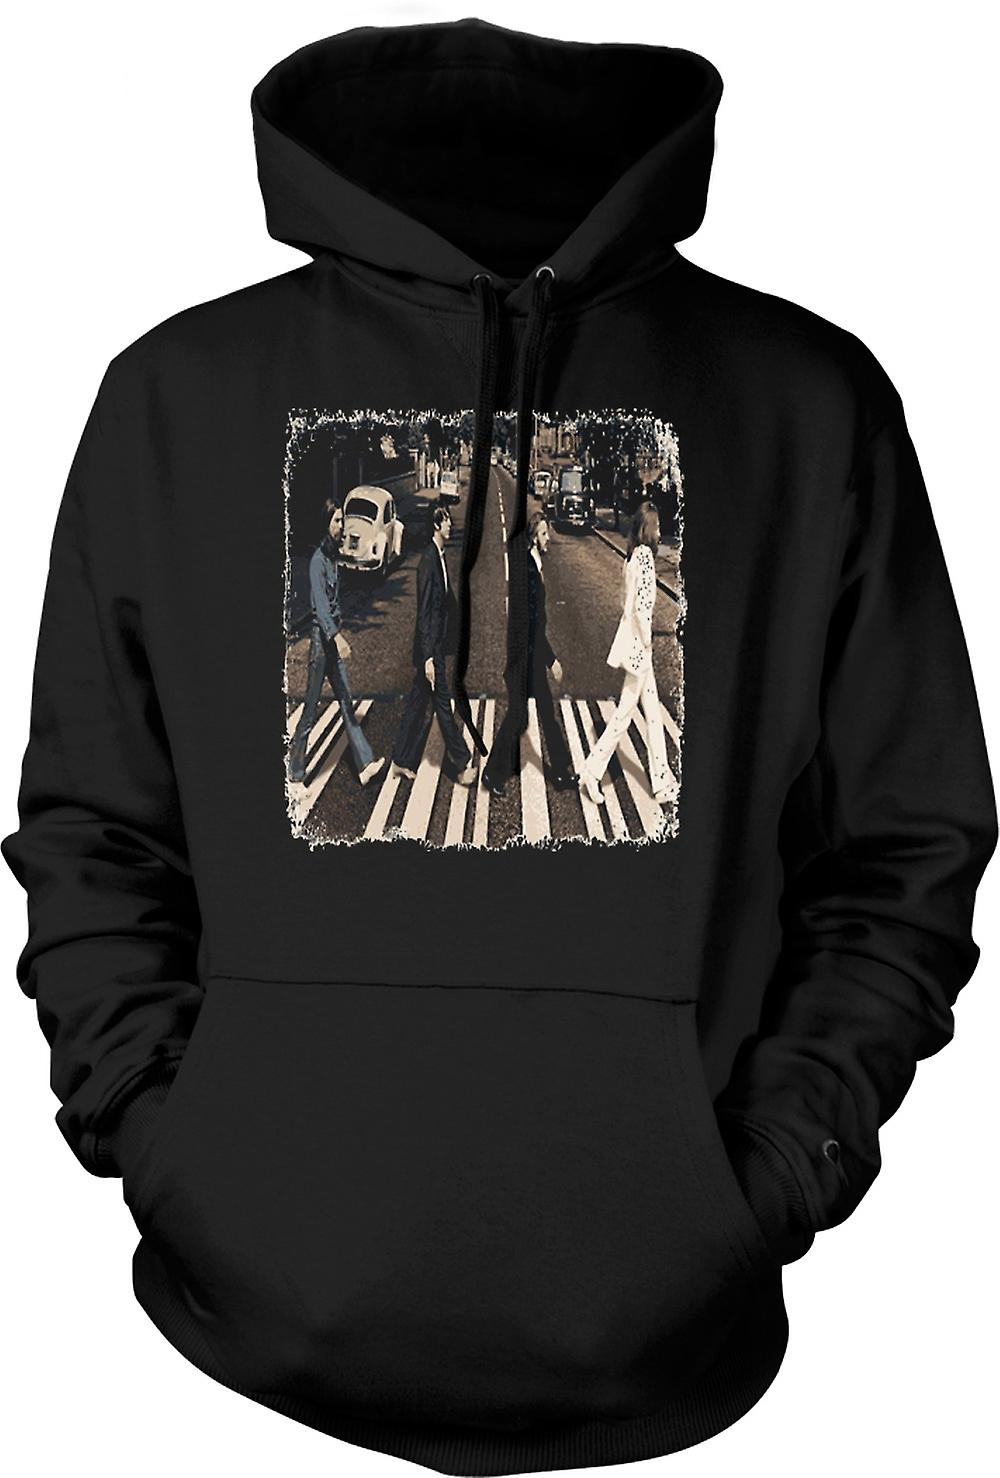 Barn Hoodie - Beatles - Abbey Road - albumet konst